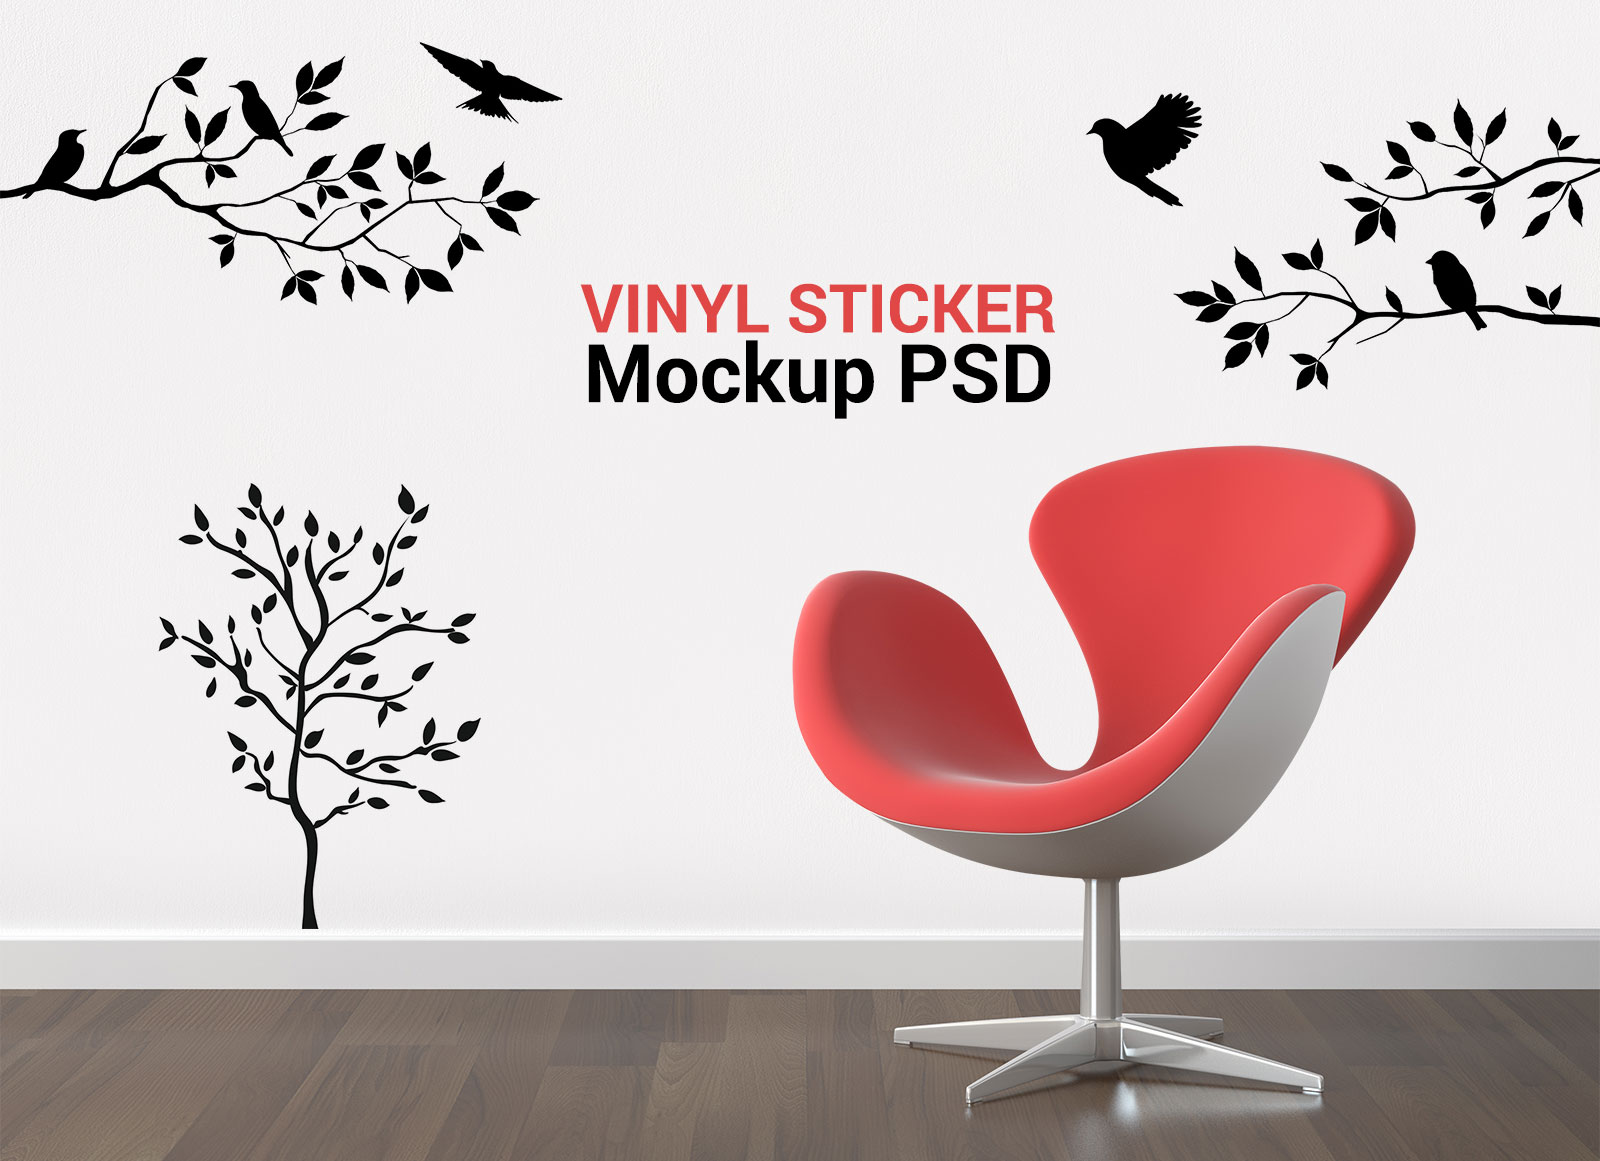 Free wall vinyl sticker mockup psd file good mockups